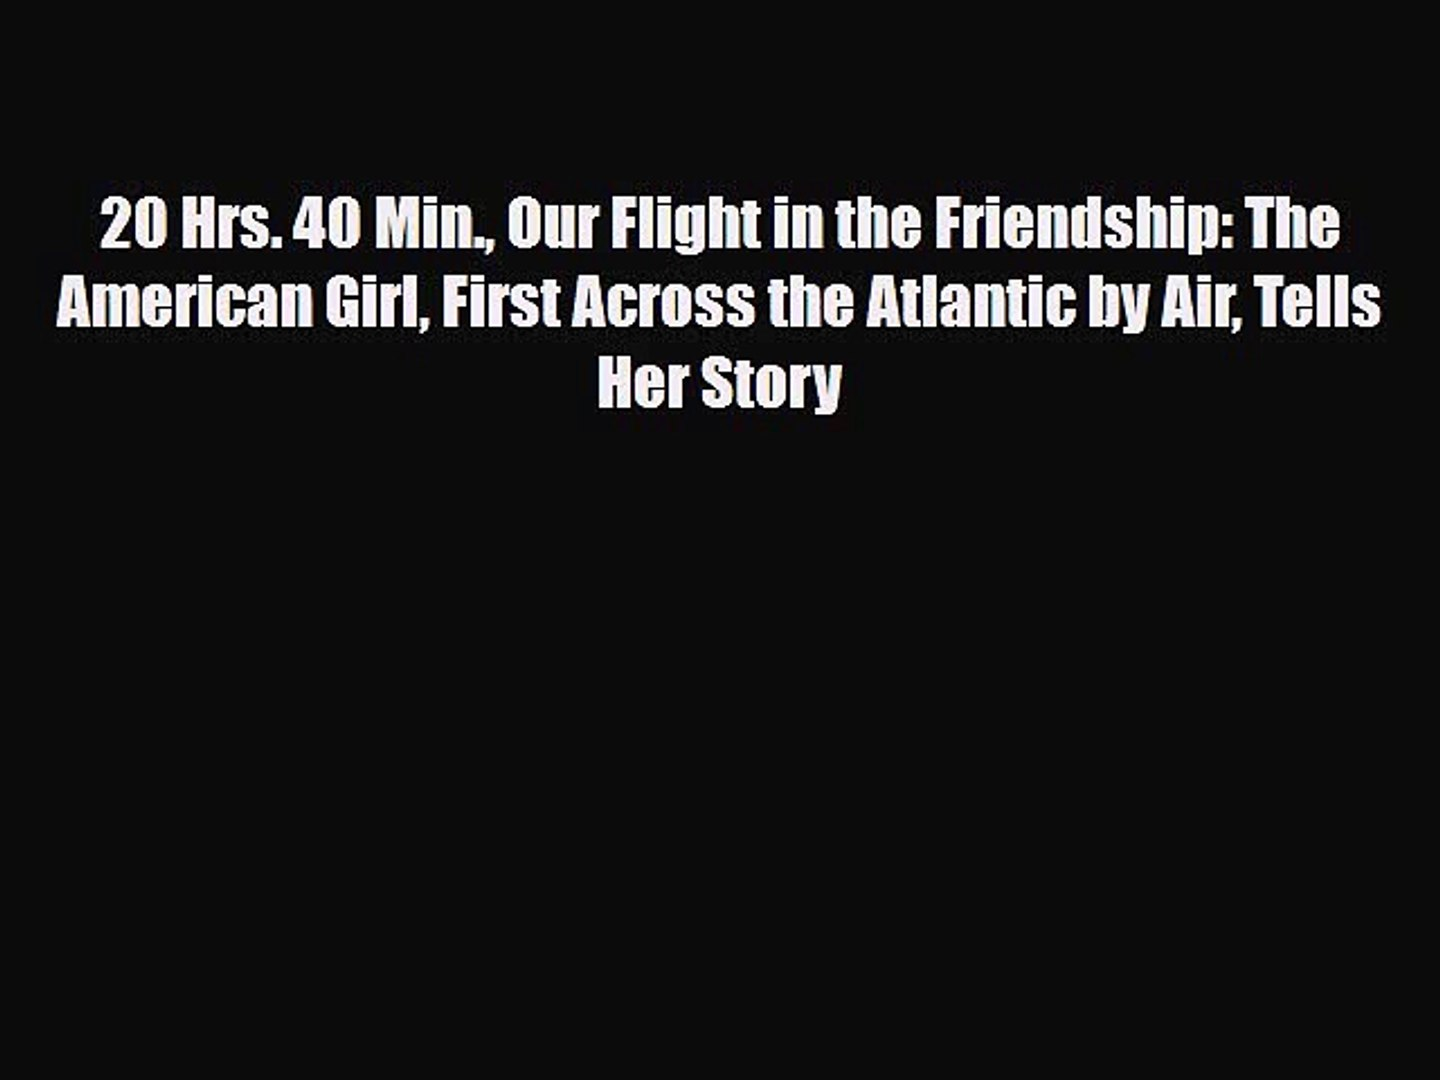 [PDF] 20 Hrs. 40 Min. Our Flight in the Friendship: The American Girl First Across the Atlantic